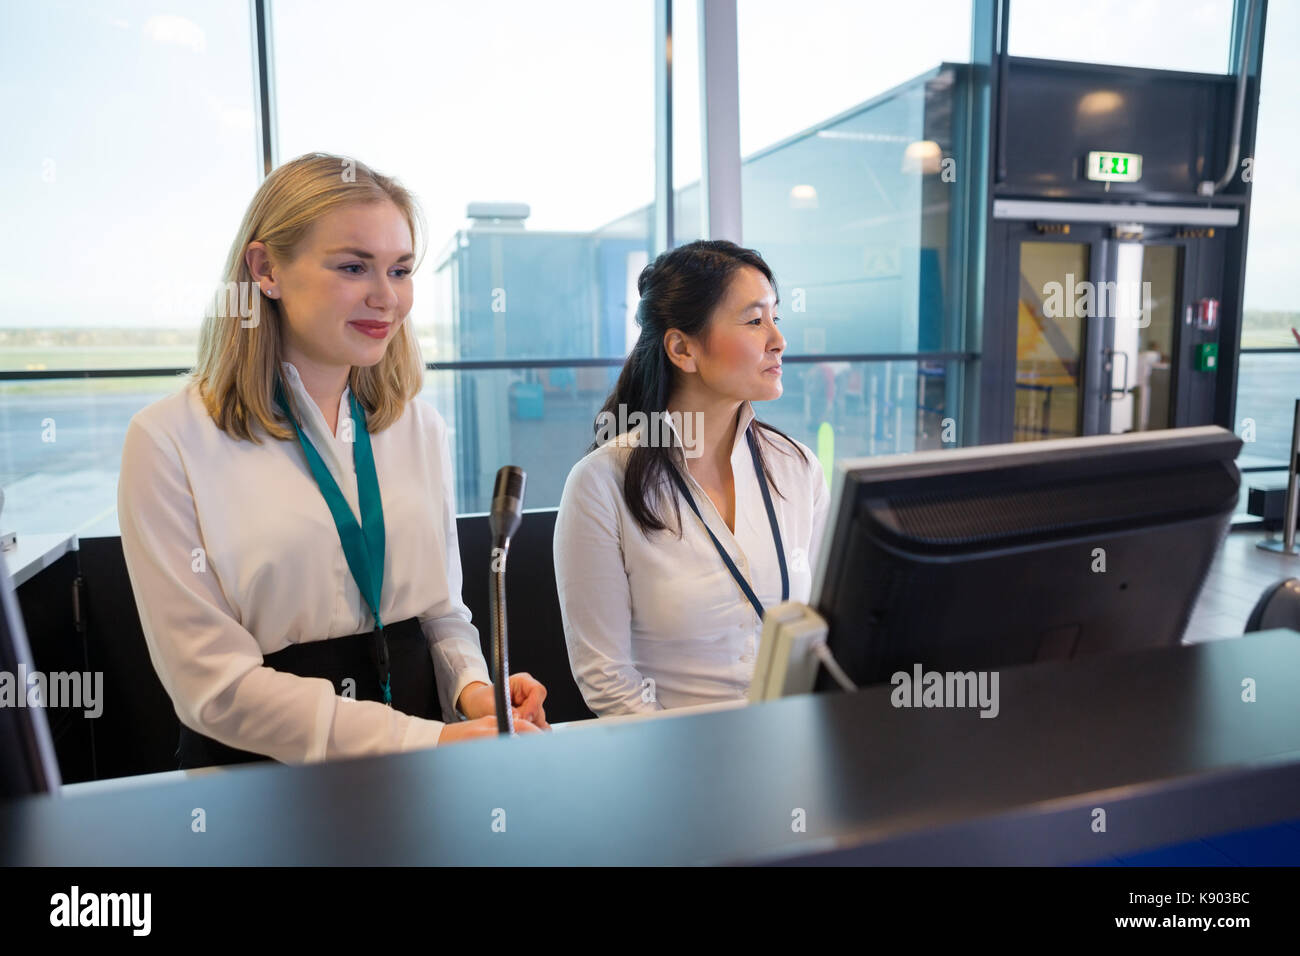 Receptionists Sitting At Help Desk In Airport - Stock Image